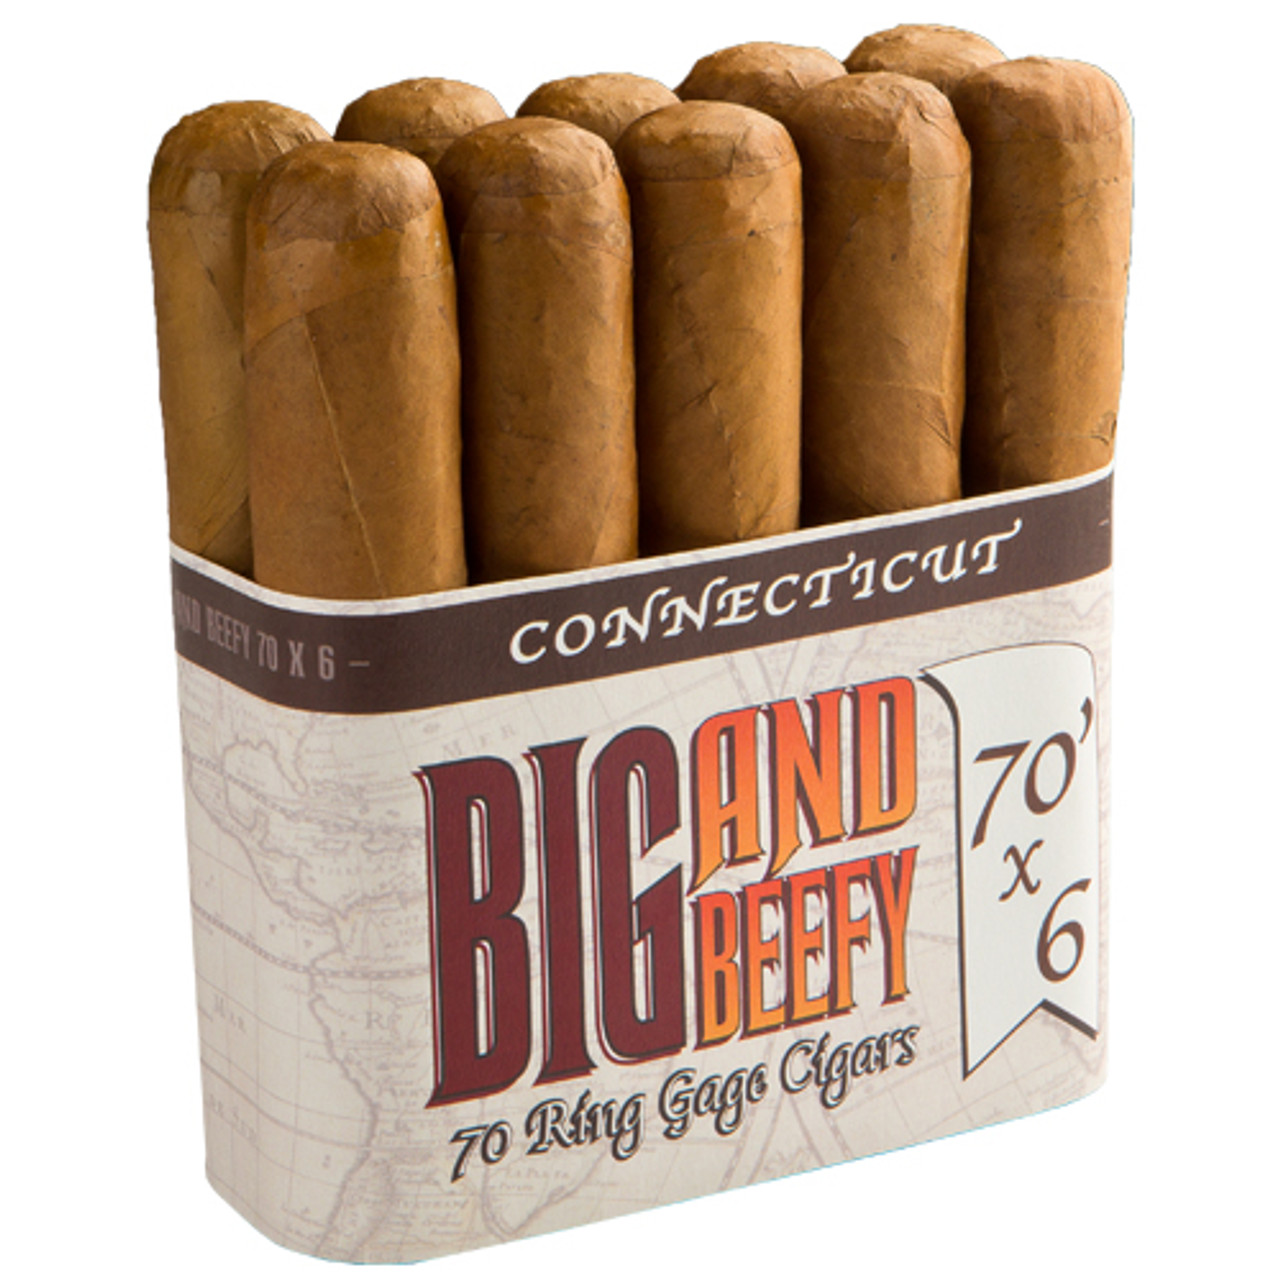 Big and Beefy Connecticut No. 770 Cigars - 7 x 70 (Bundle of 10)